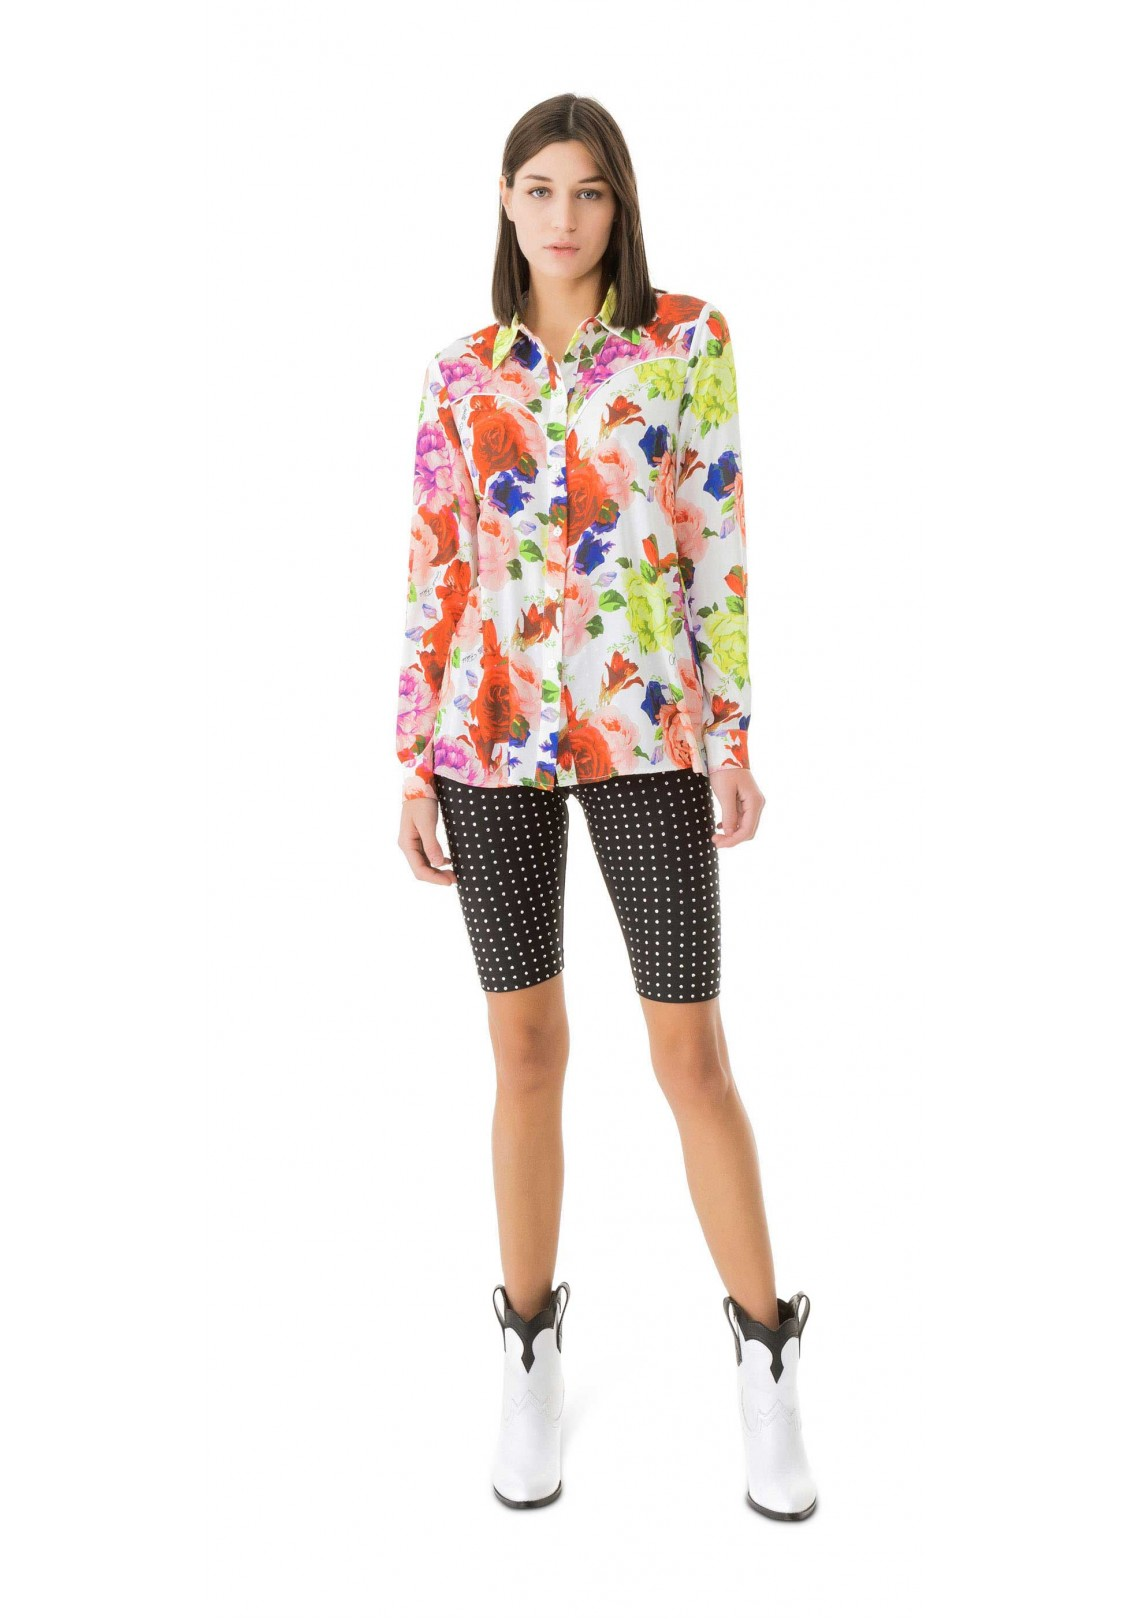 SHIRT - GBD5843 - GAELLE PARIS